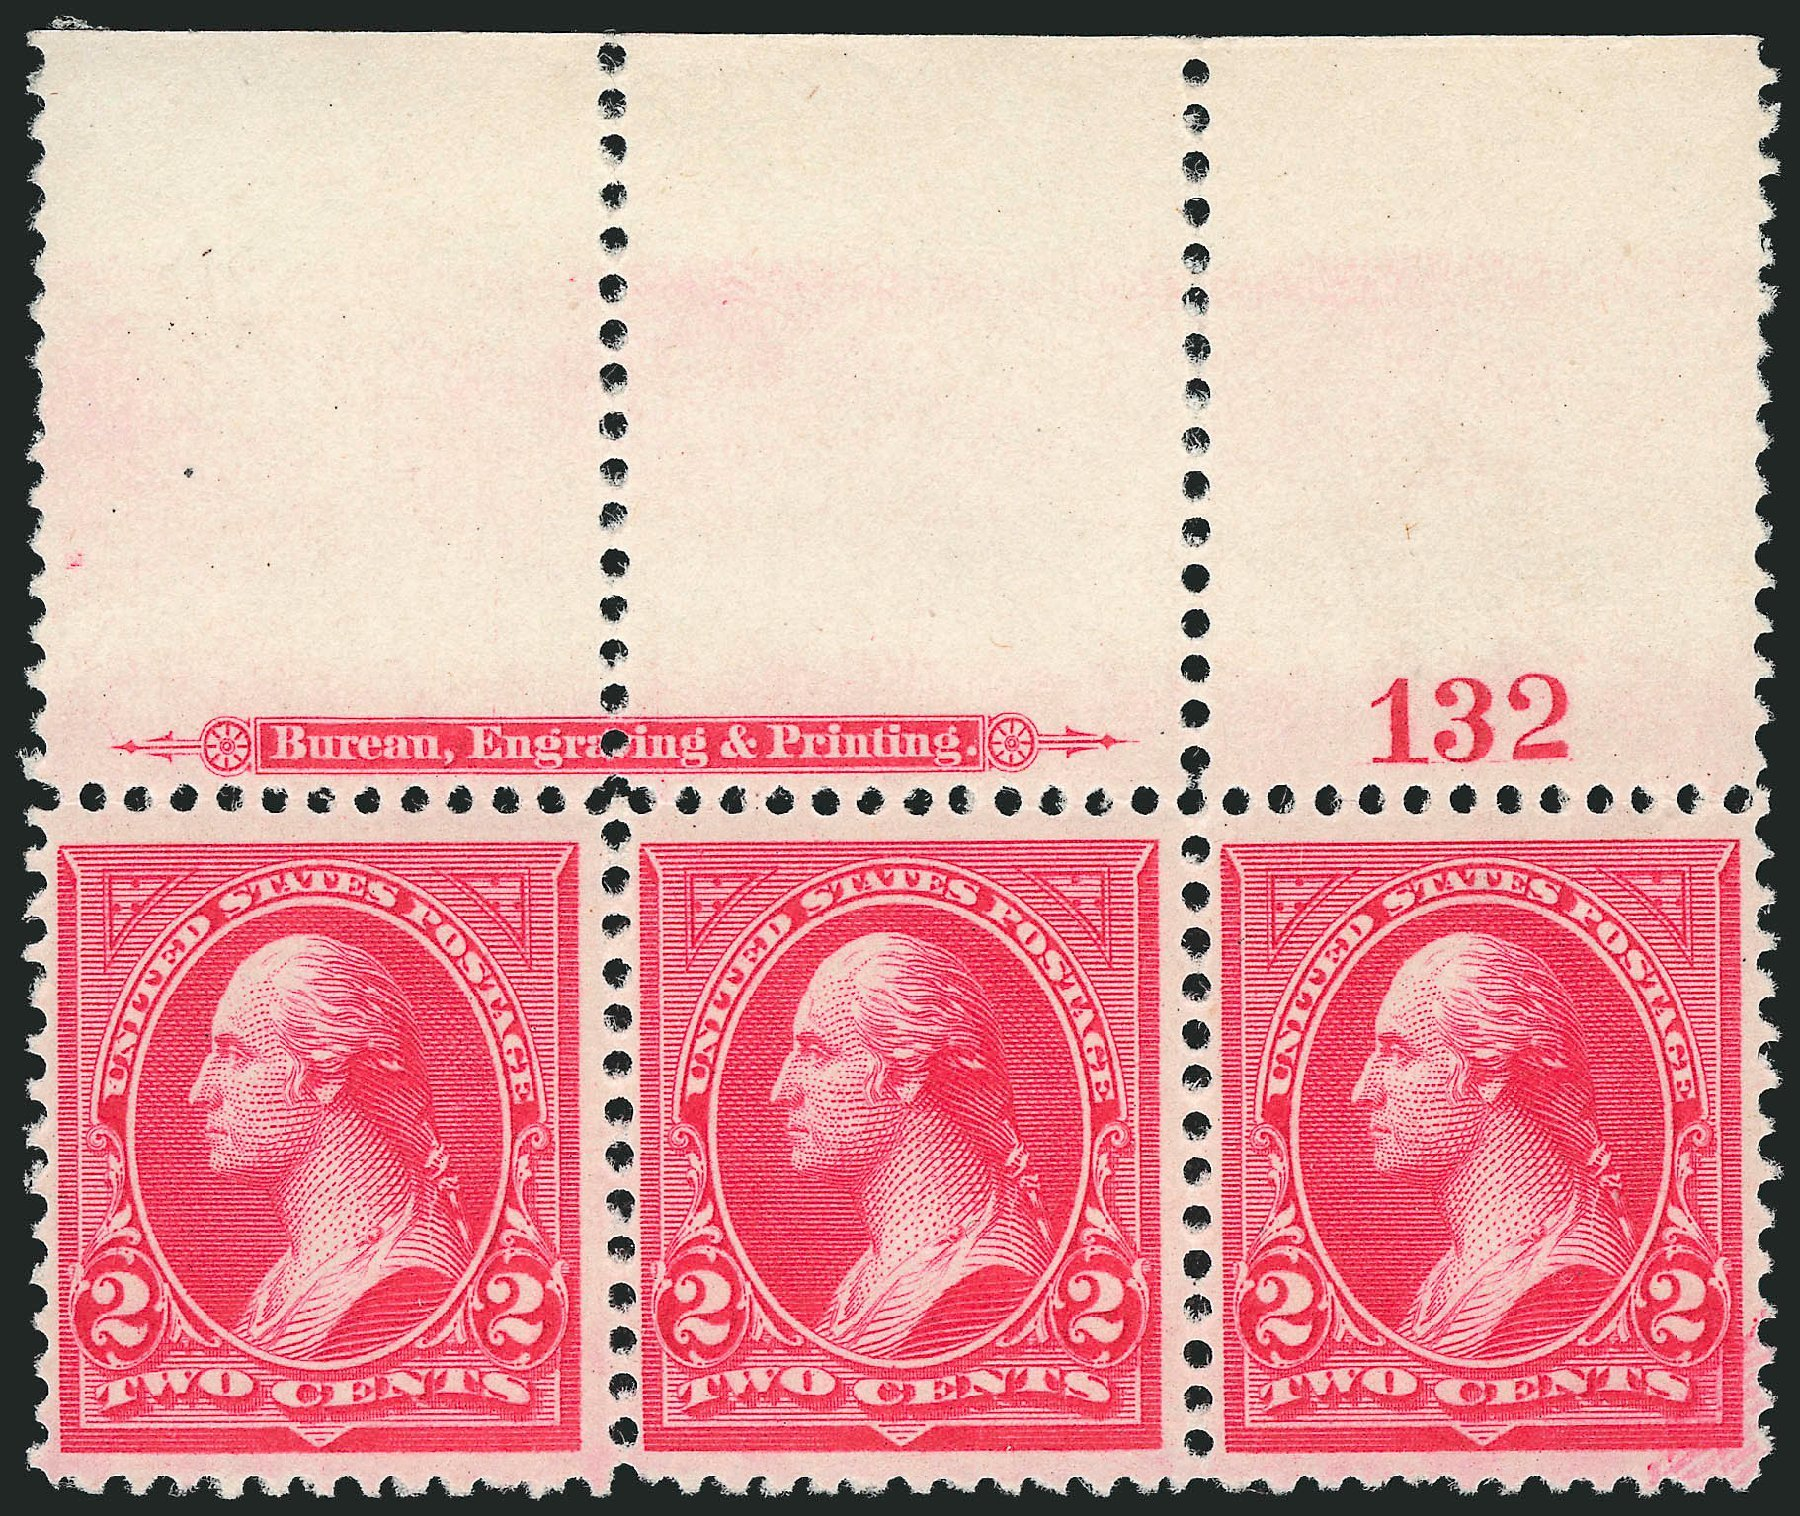 US Stamp Price Scott Catalog #251 - 1894 2c Washington. Robert Siegel Auction Galleries, Sep 2014, Sale 1078, Lot 383